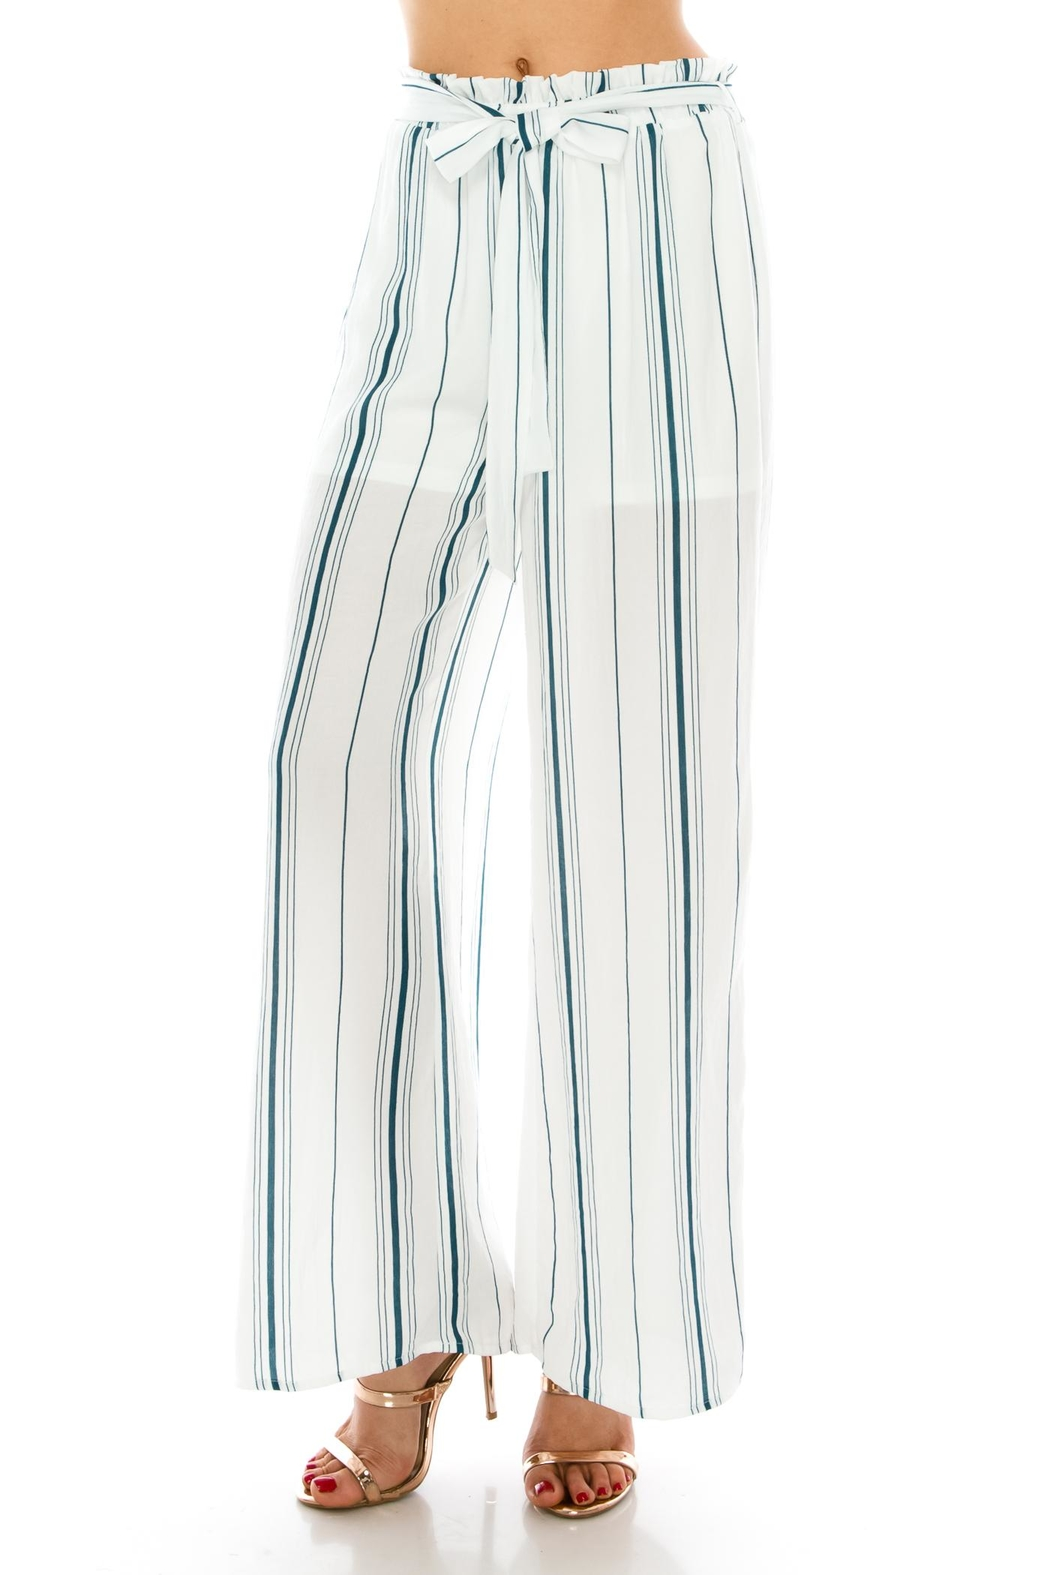 Favlux Stripe Tie Pants - Main Image